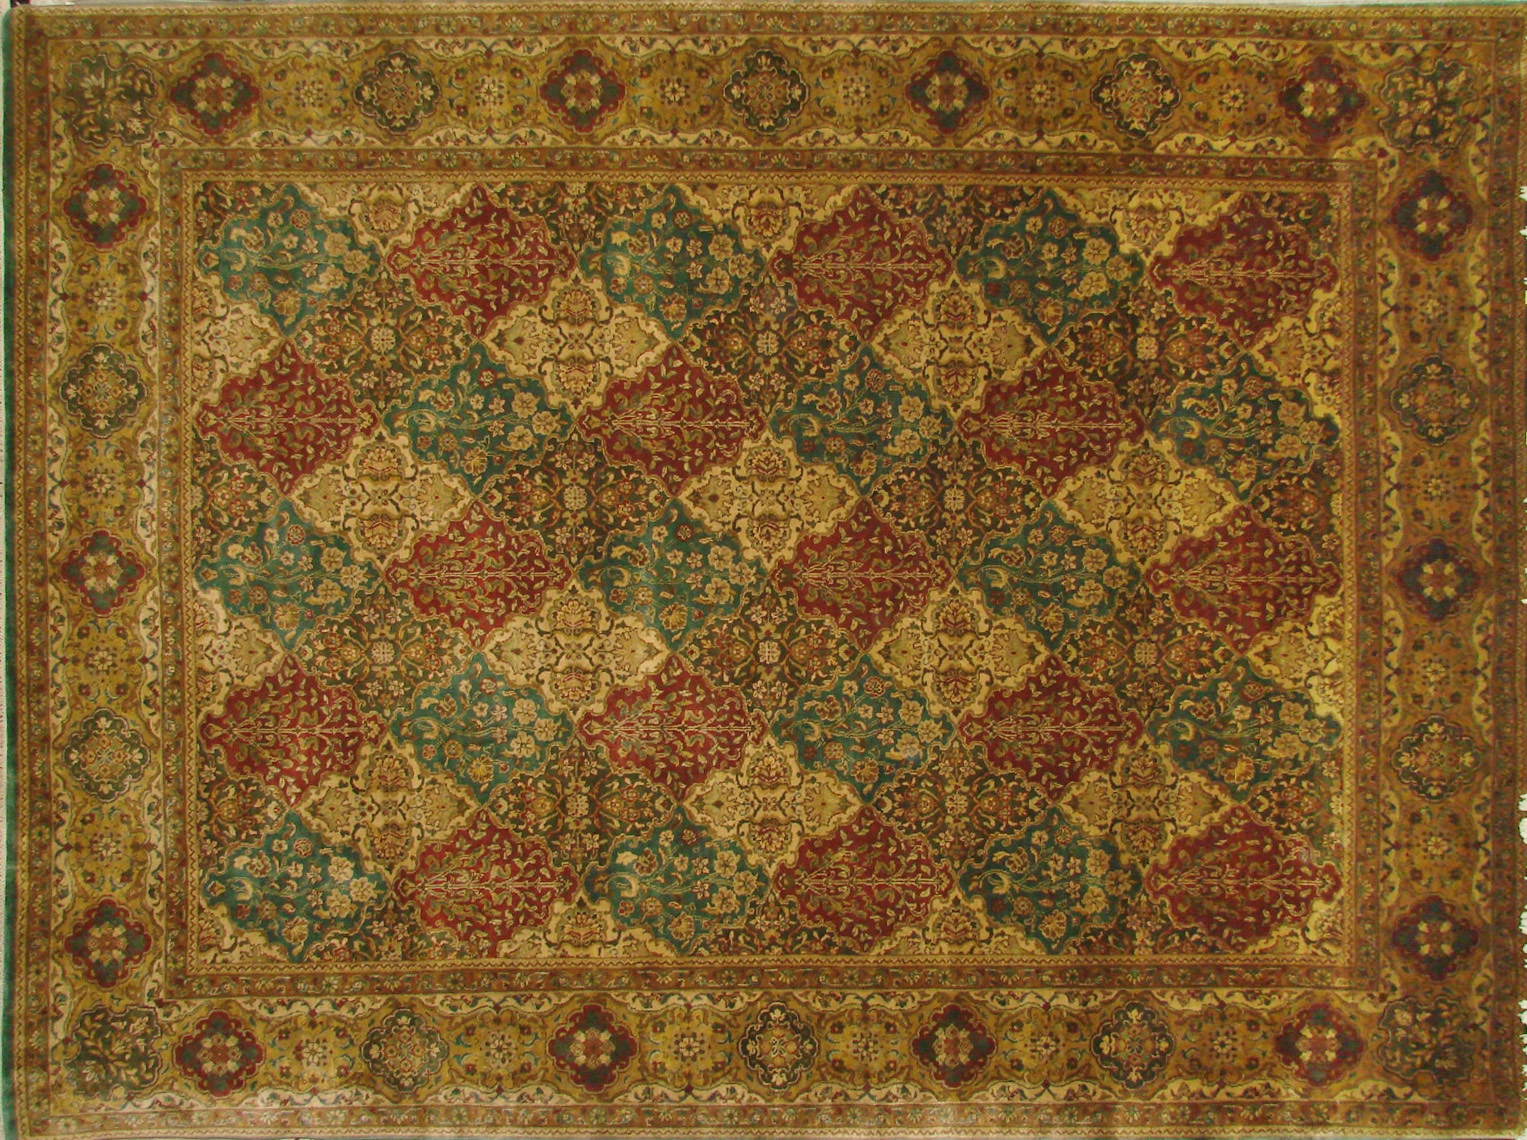 9x12 Jaipur Hand Knotted Wool Area Rug - MR0453